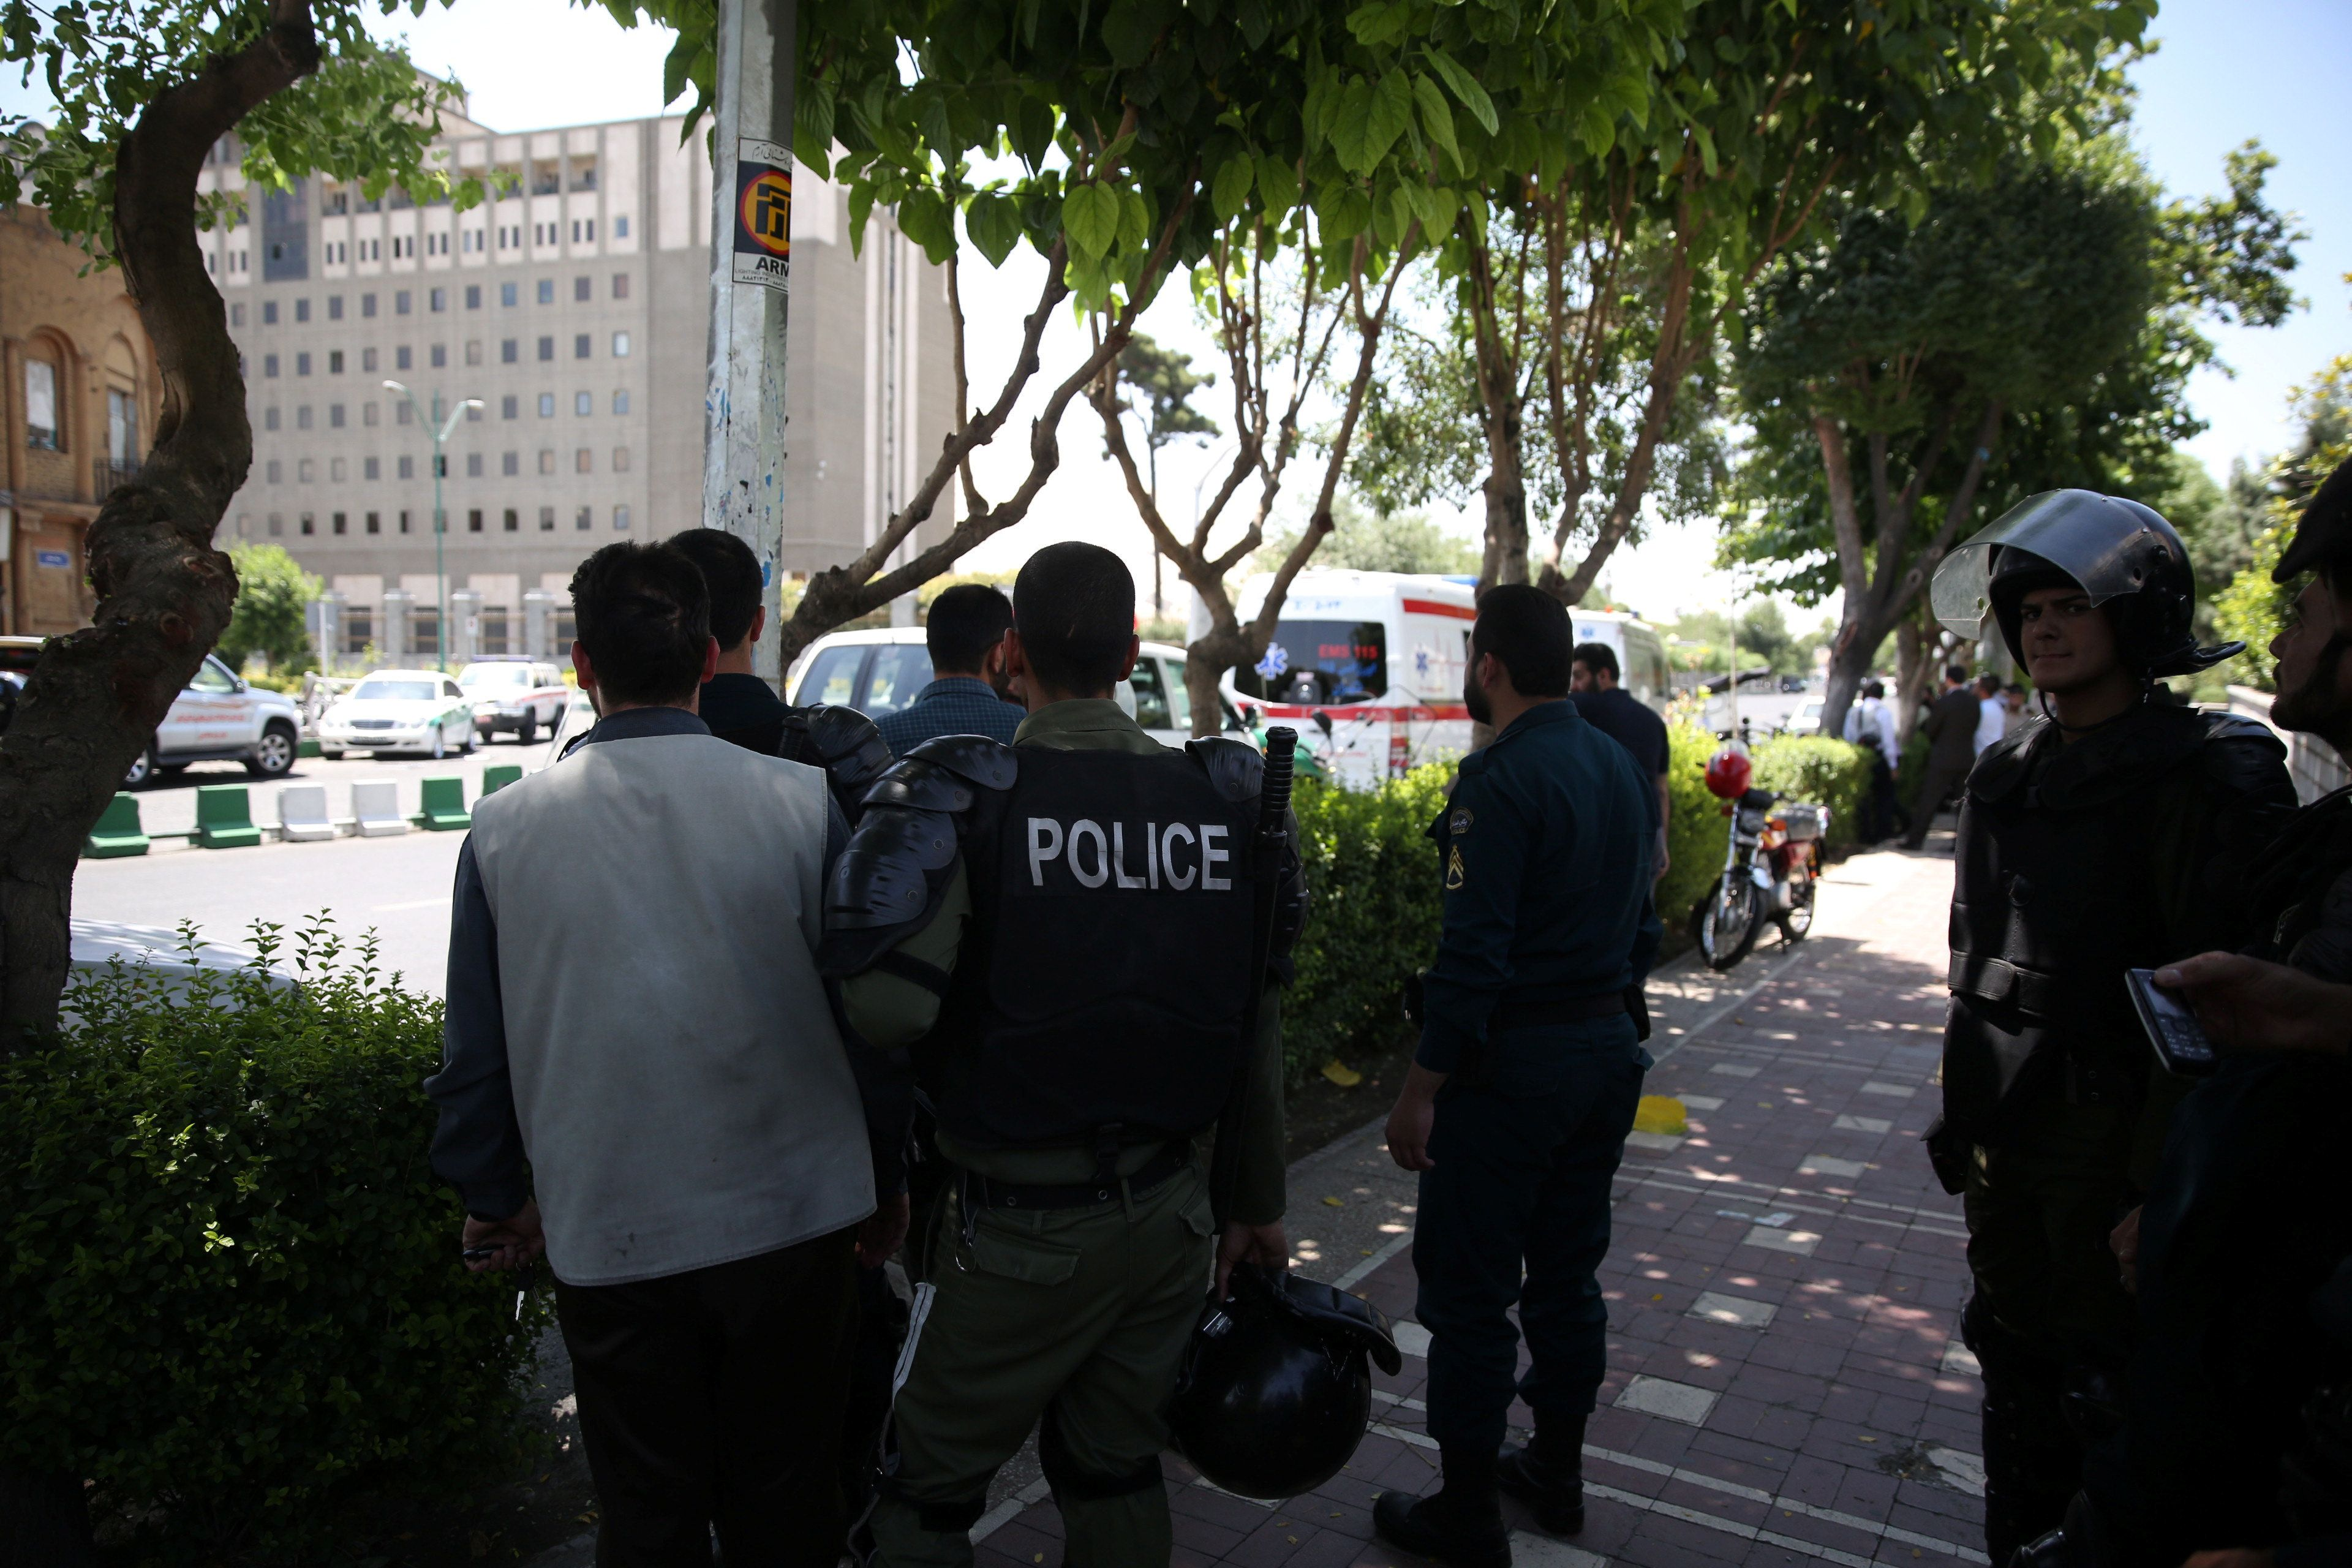 A guard was killed on Wednesday when armed men launched an attack onthe parliament in central Tehran.